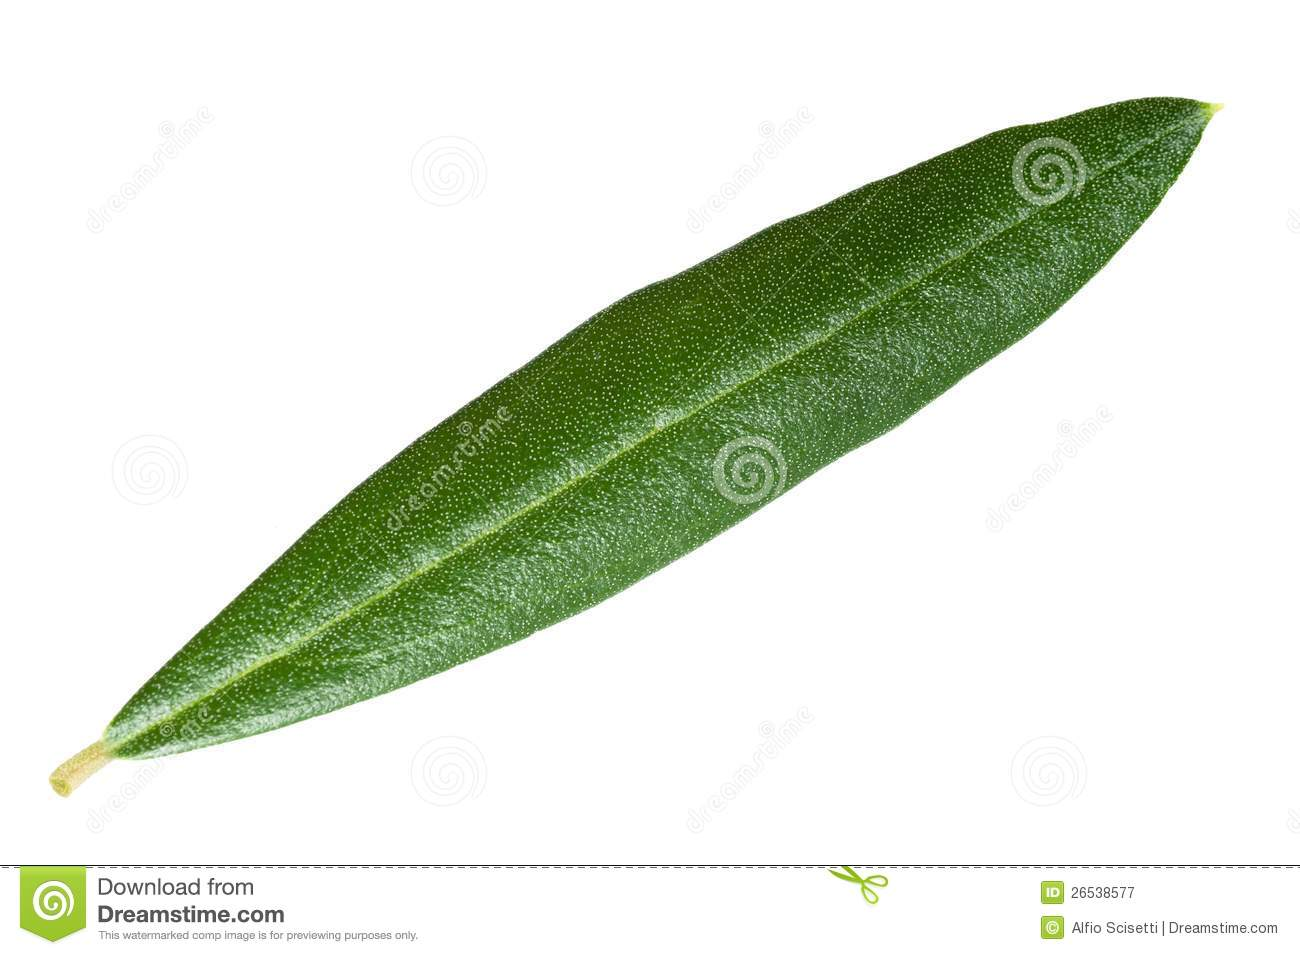 Olive Leaf Royalty Free Stock Photography - Image: 26538577